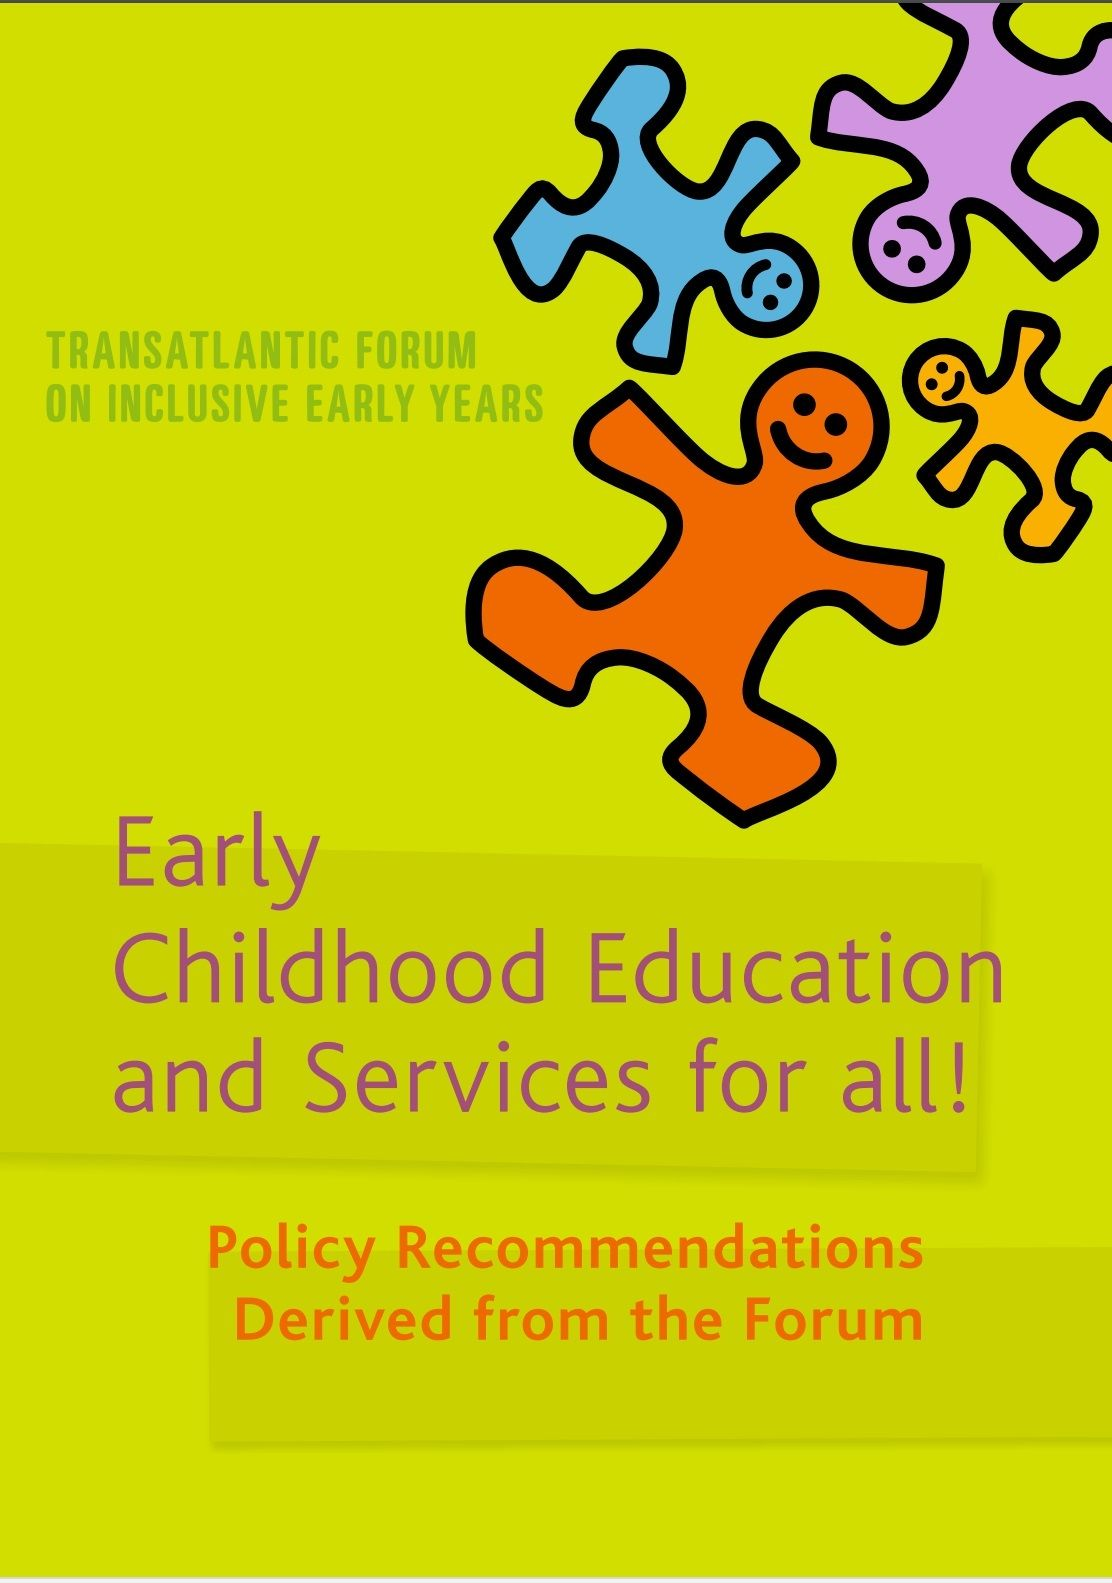 inclusive education laws and policies Legislation and guidance for inclusive education inclusive education and the law in the uk the law supporting inclusive education in the uk legislation in the uk prohibits discrimination in education and supports inclusive education.